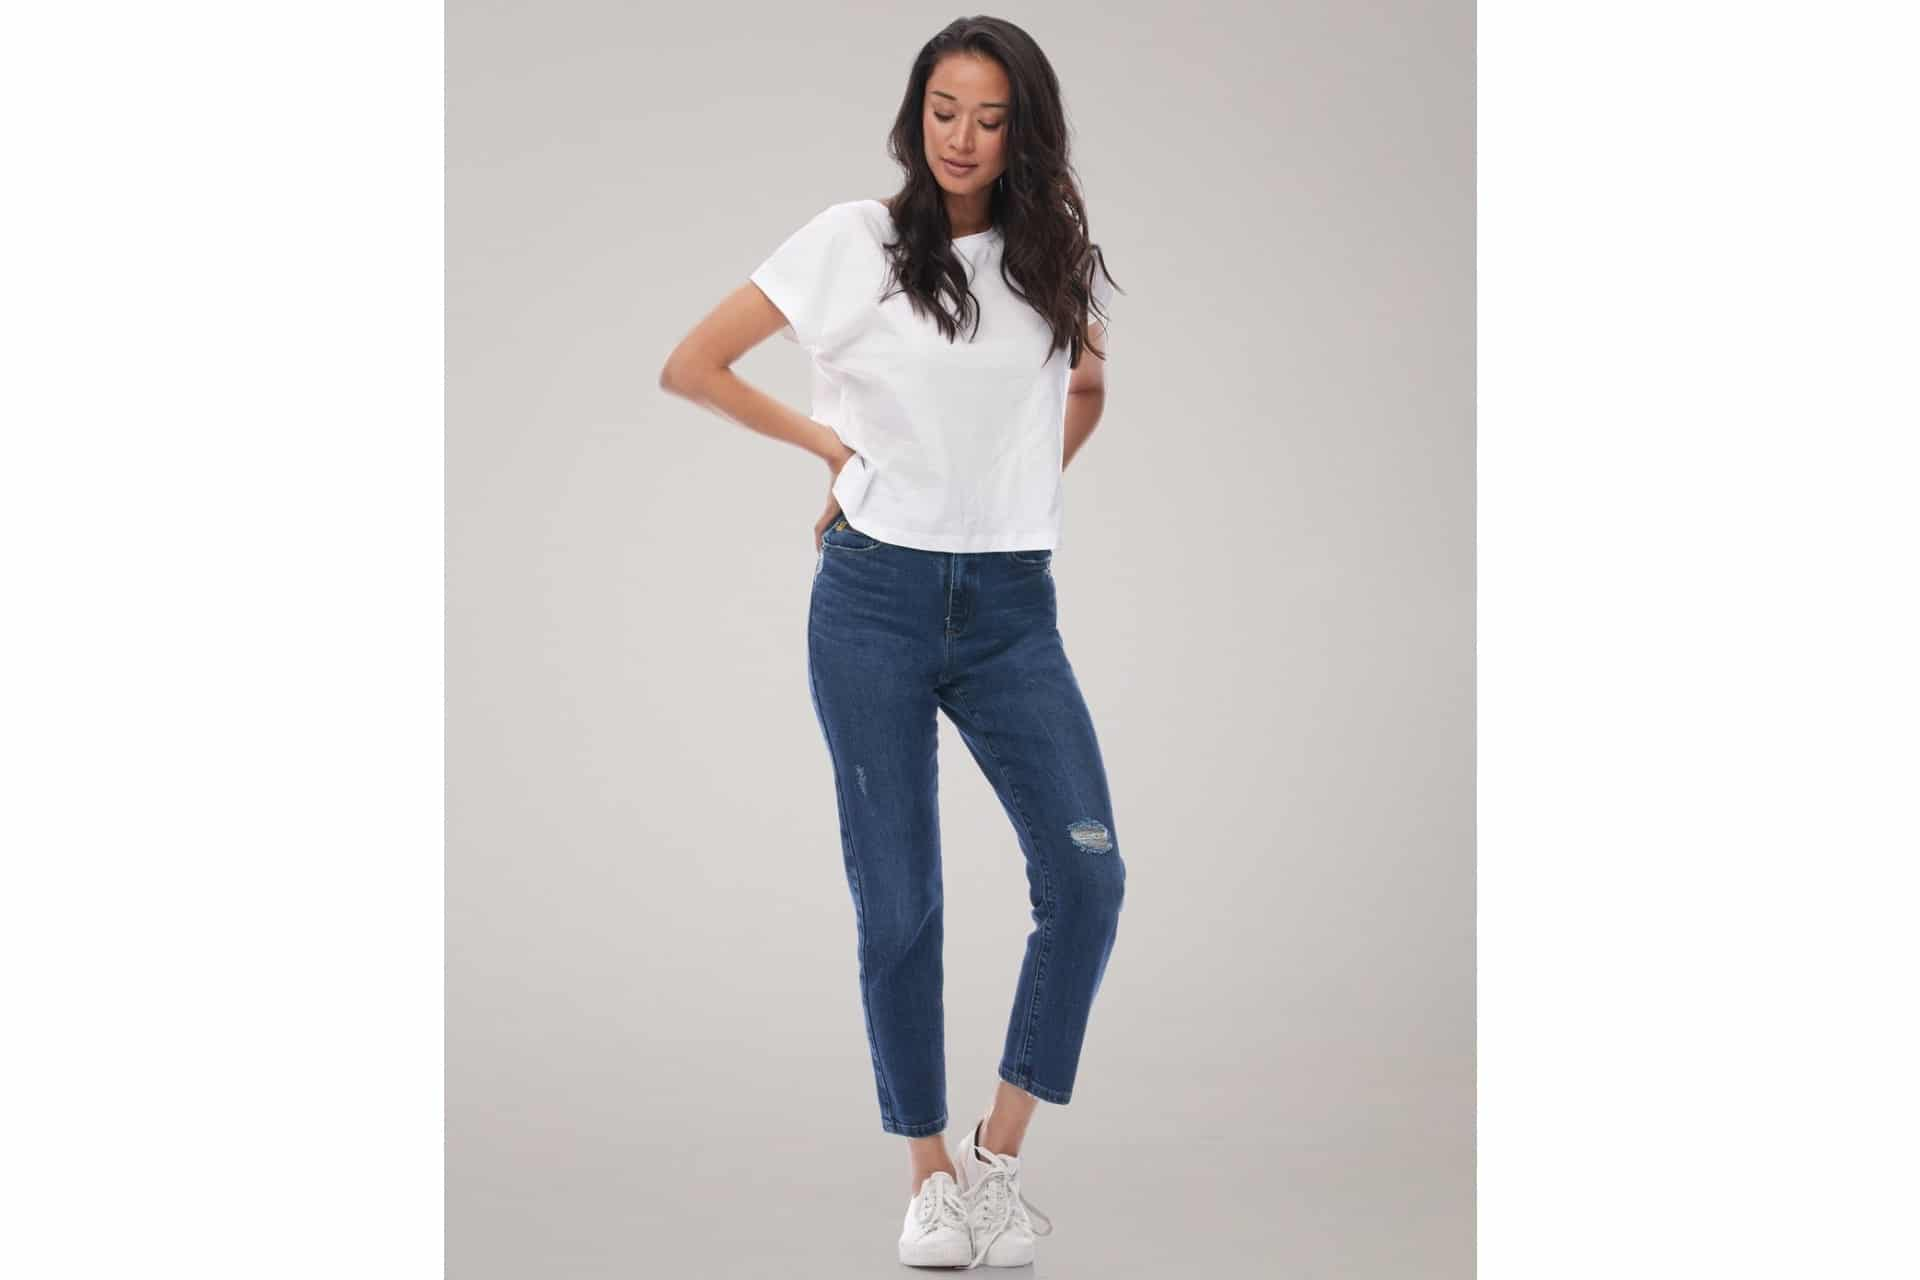 Woman in jeans and a white tshirt looks away from the camera